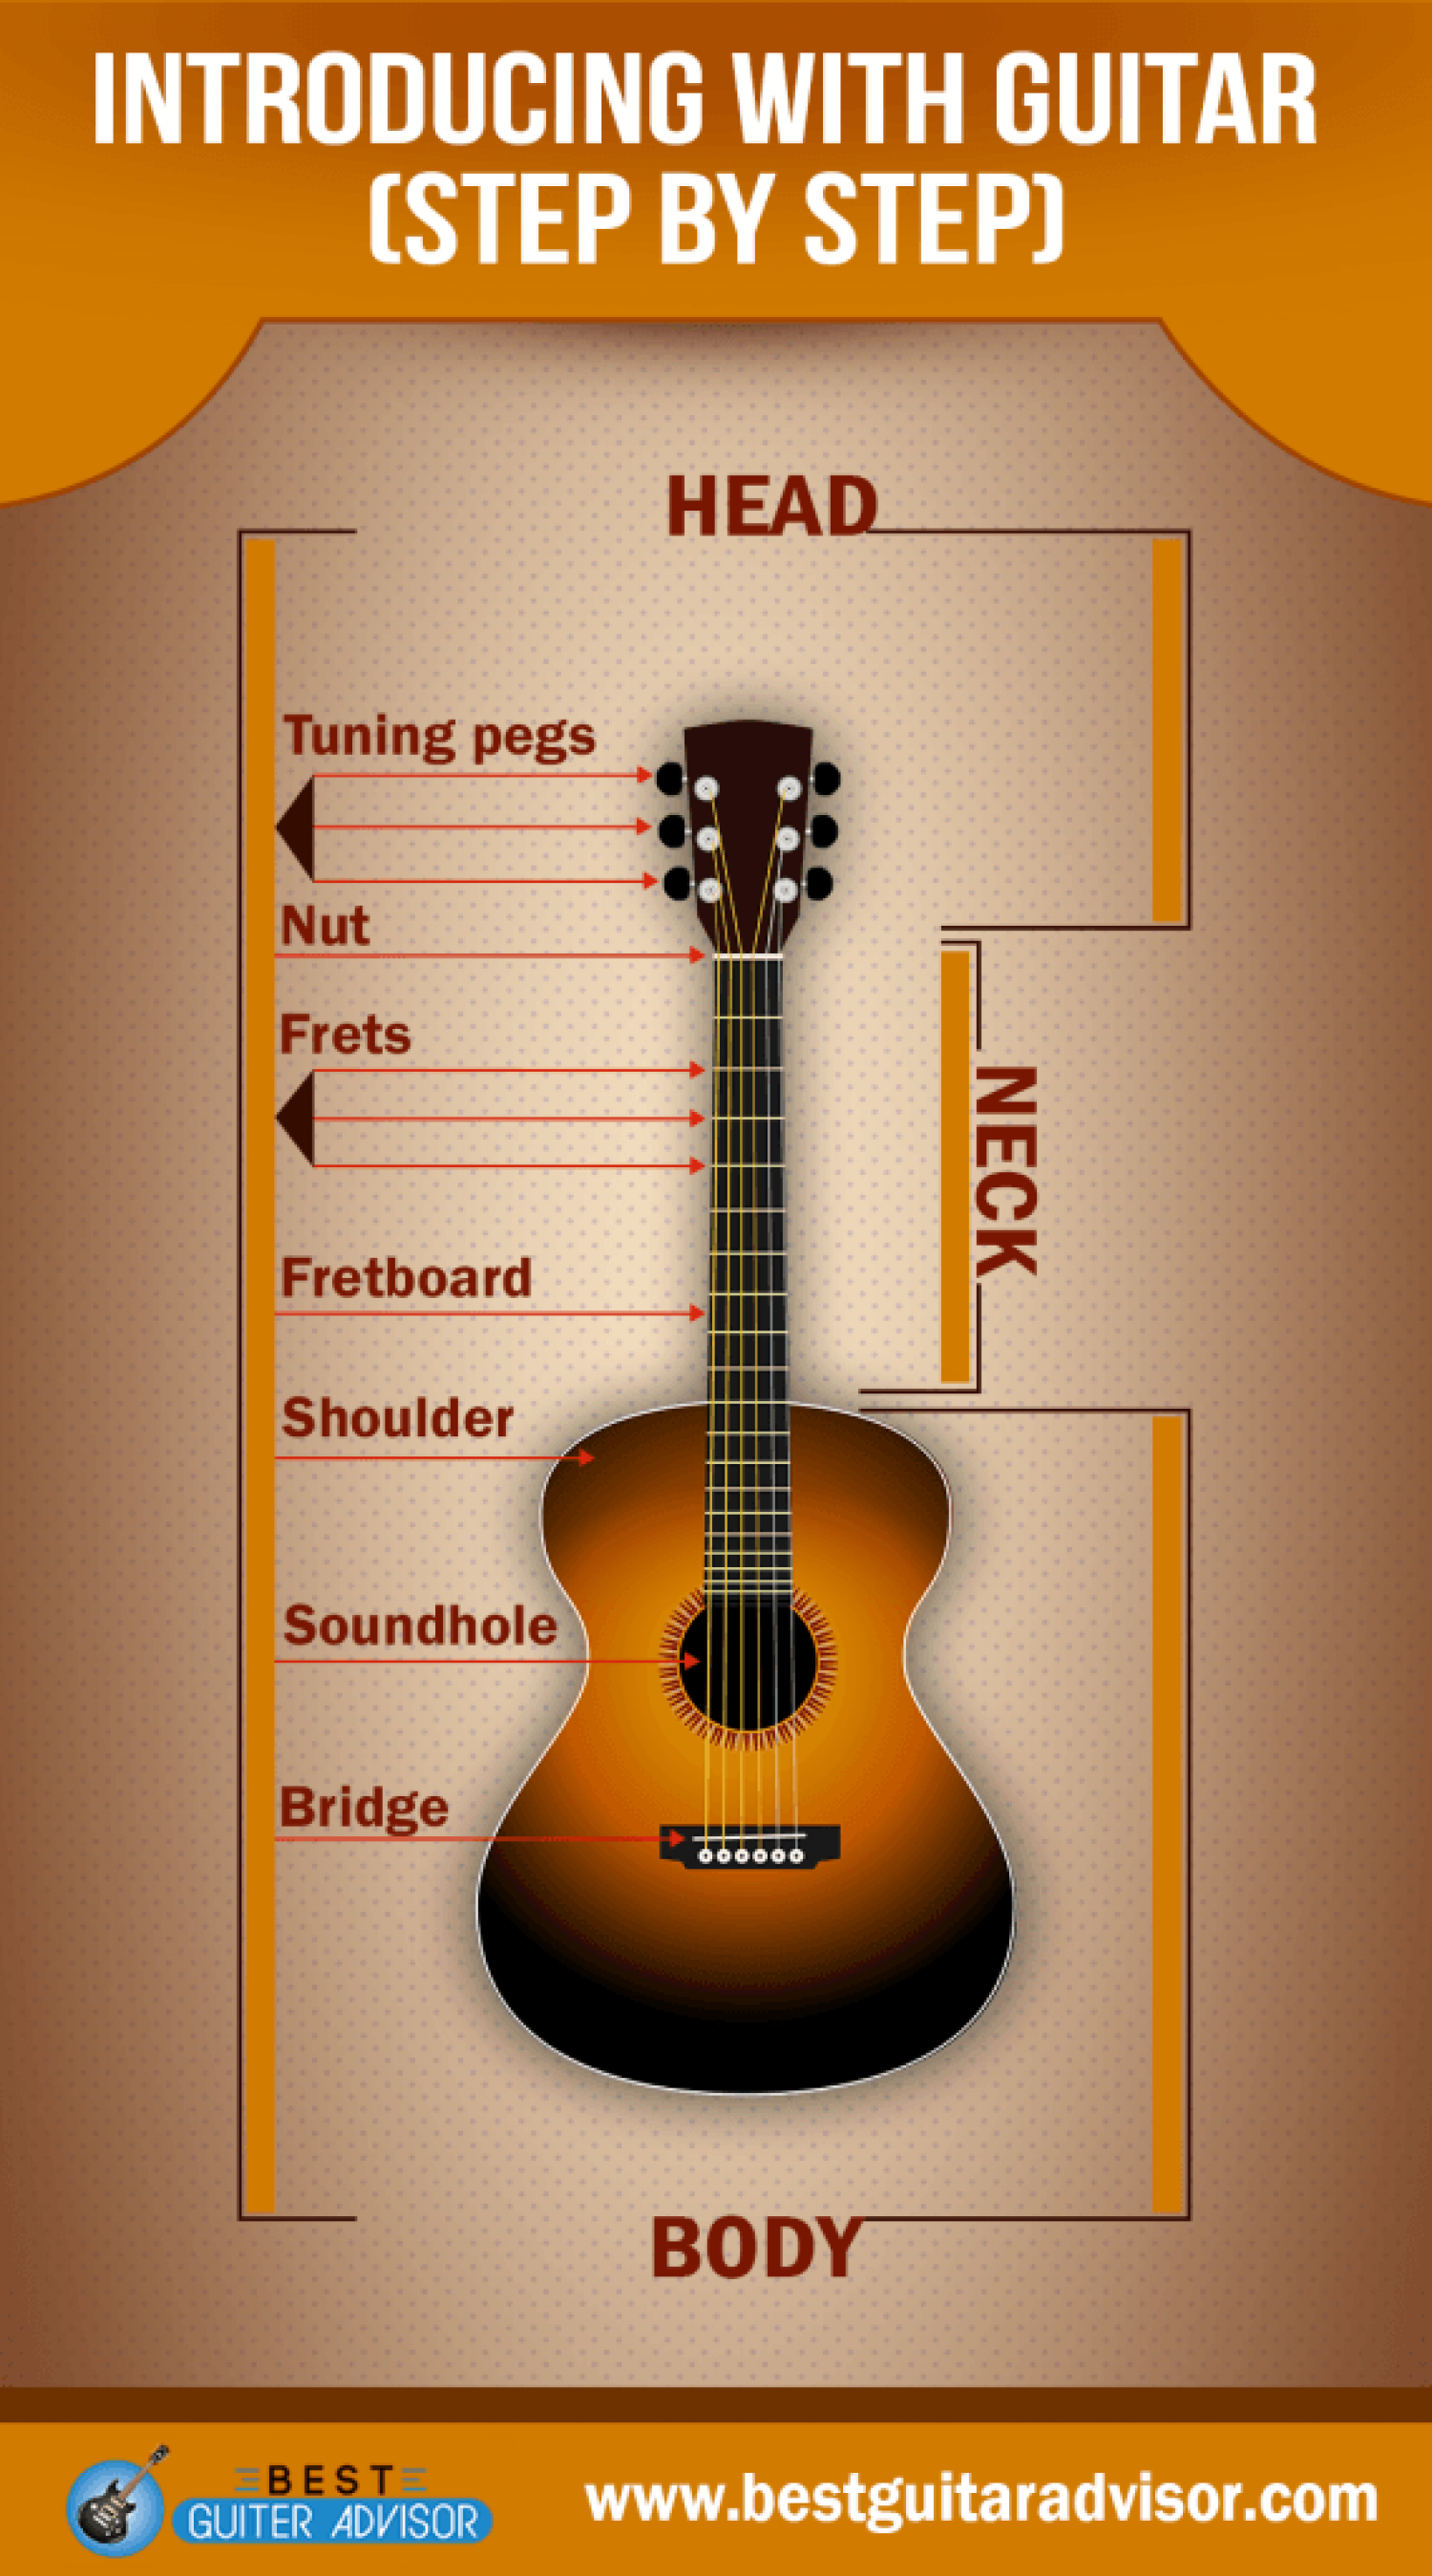 Introducing with guitar [Step by step] Infographic